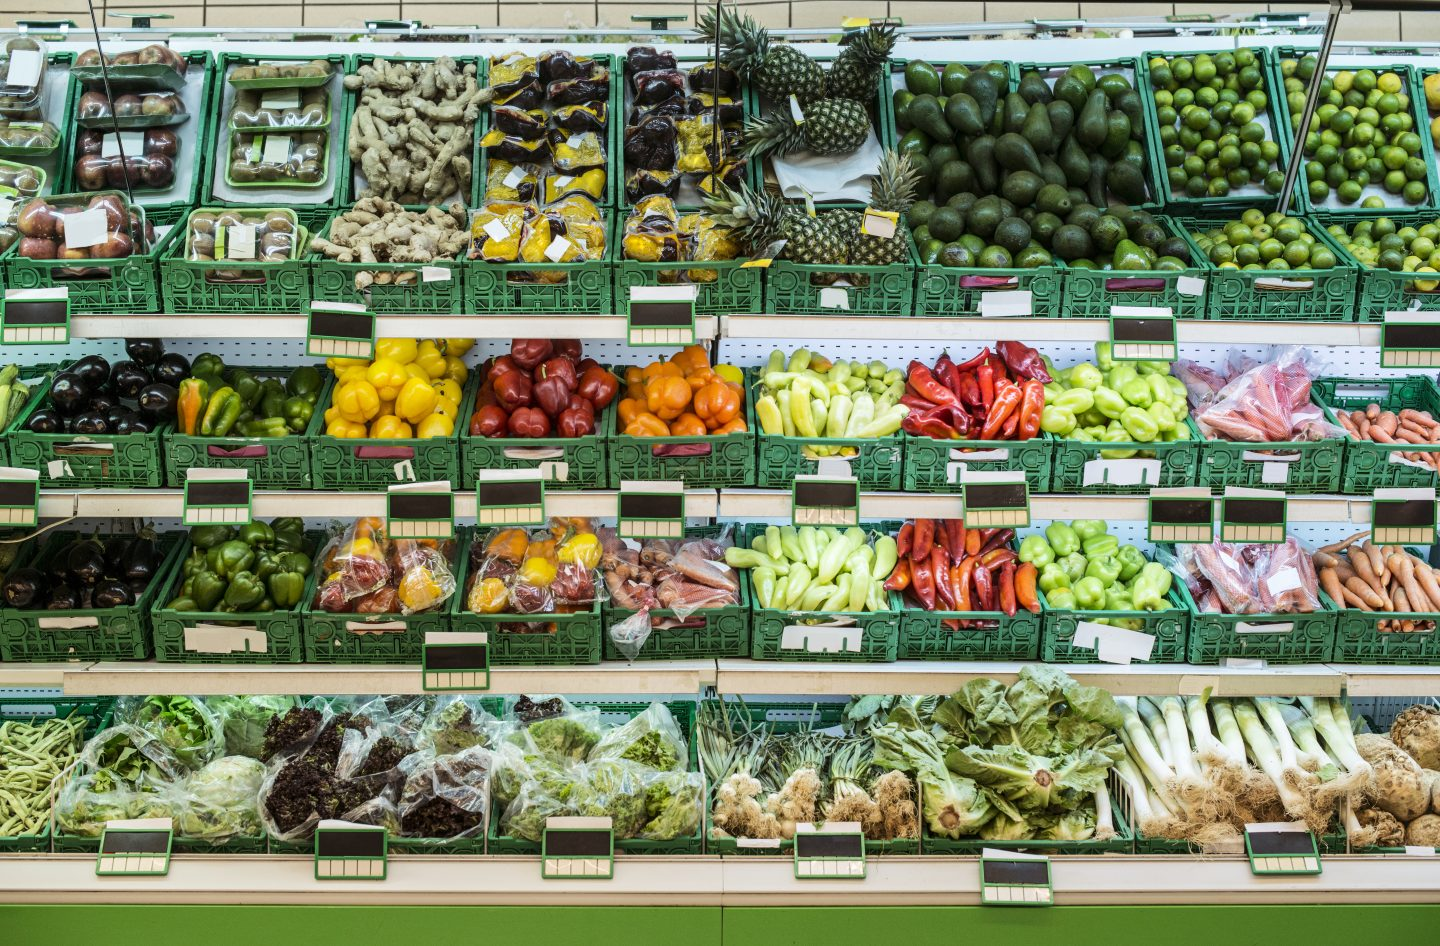 Stand with fruits and vegetables in the supermarket. Nutrition is very important when running a marathon. GamePlan A